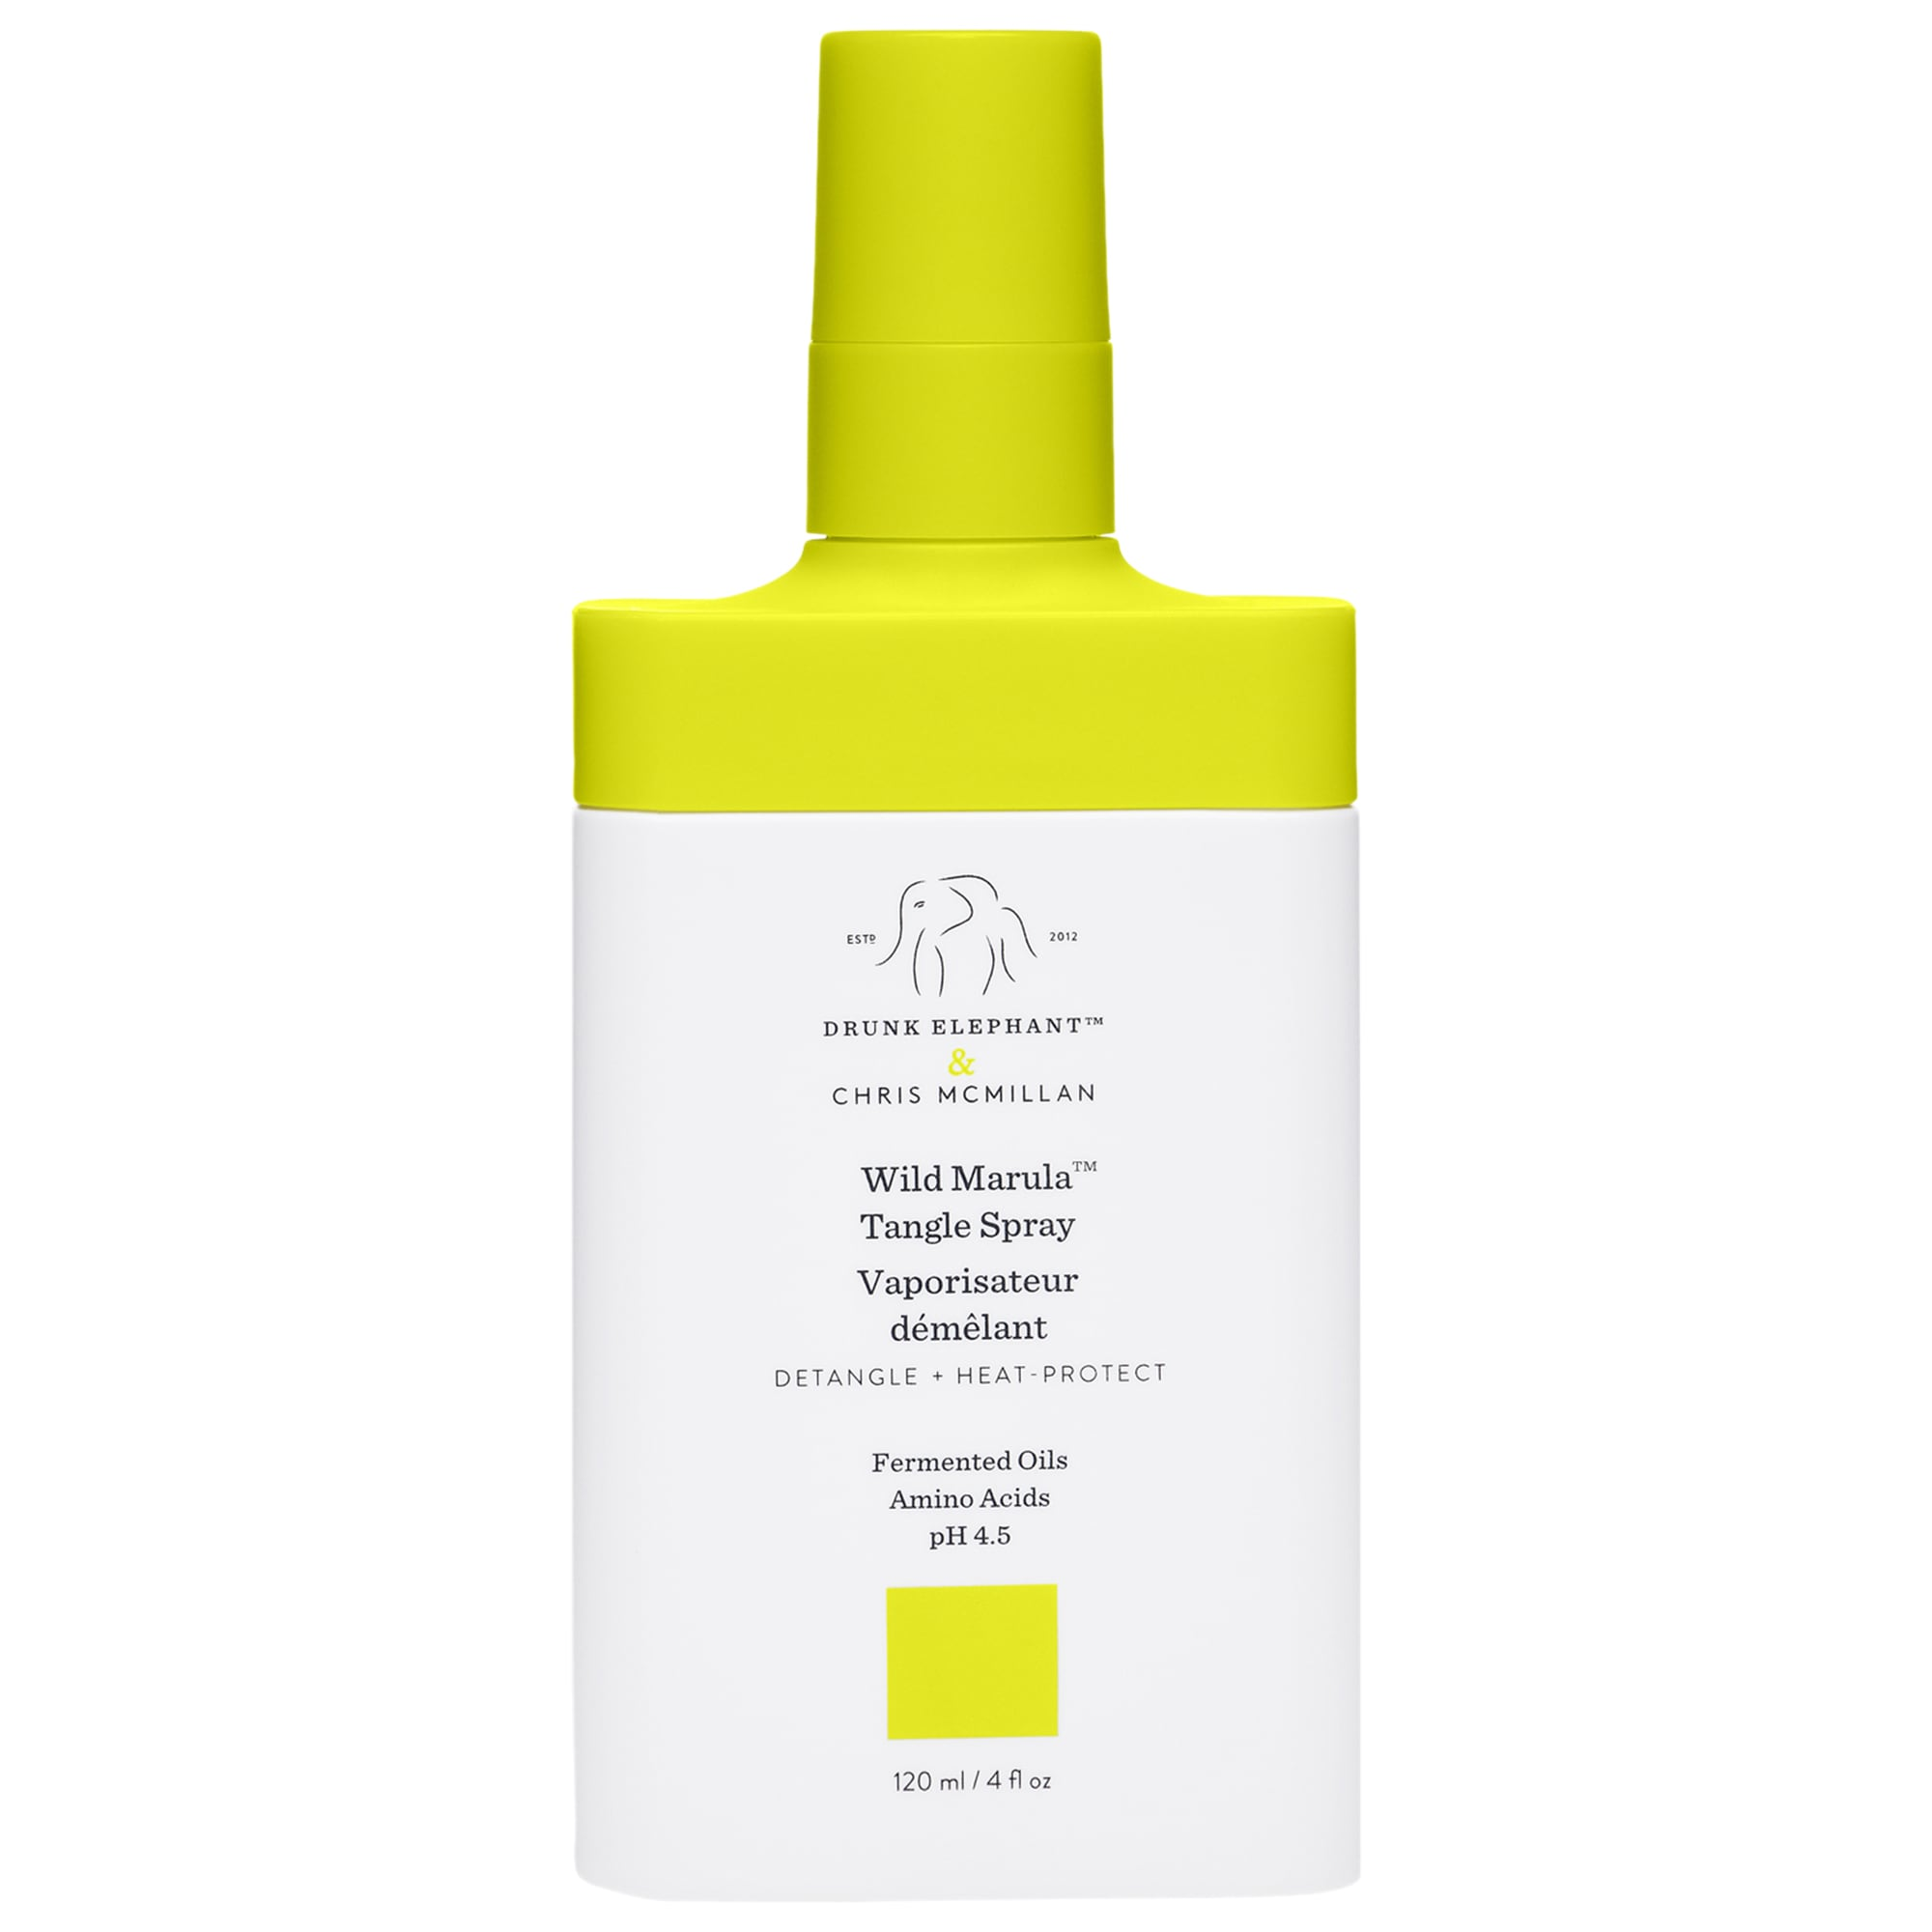 Drunk Elephant New Hair Body Care Products Reviews